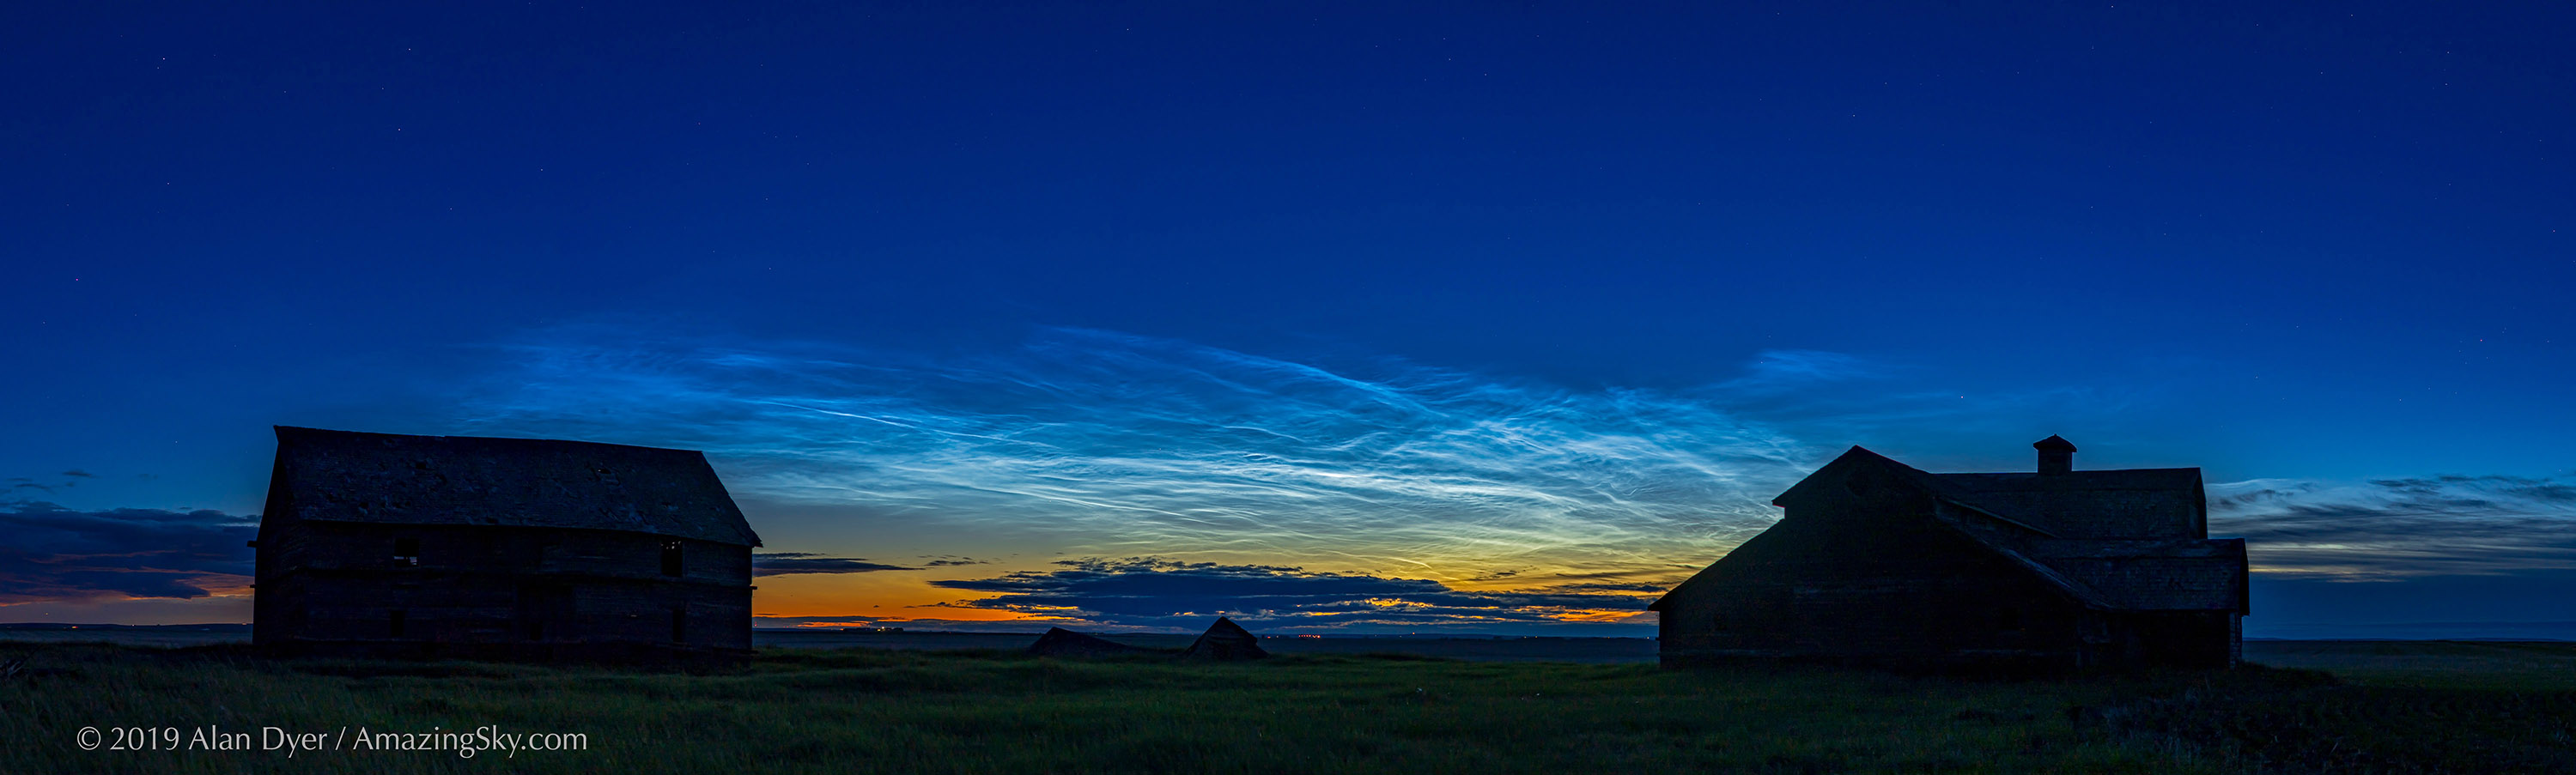 Noctilucent Cloud Panorama over OId Barns on June 19, 2019